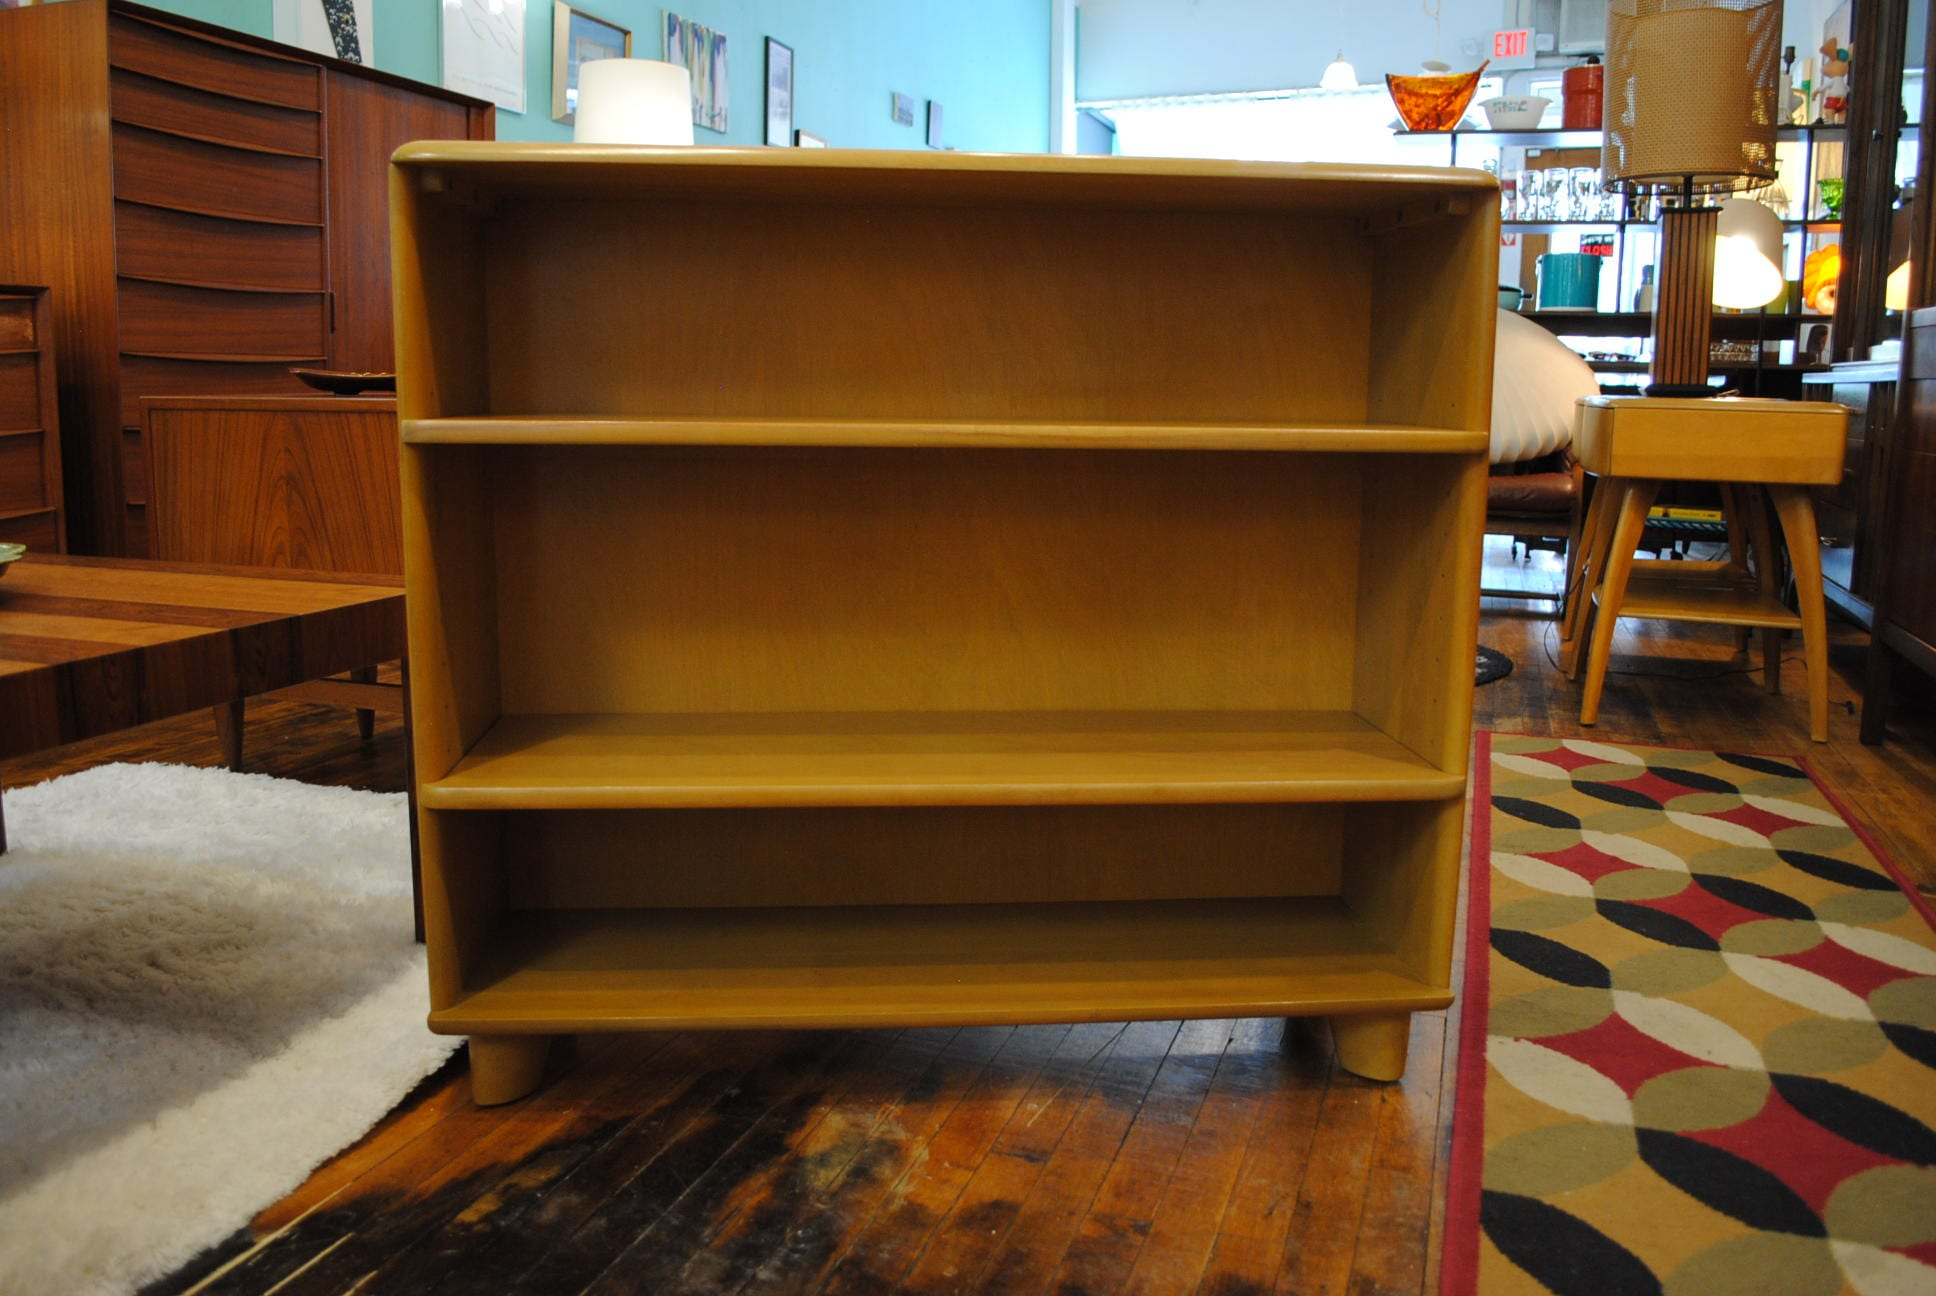 sinclair maple sided tortuga double bookcase shelves